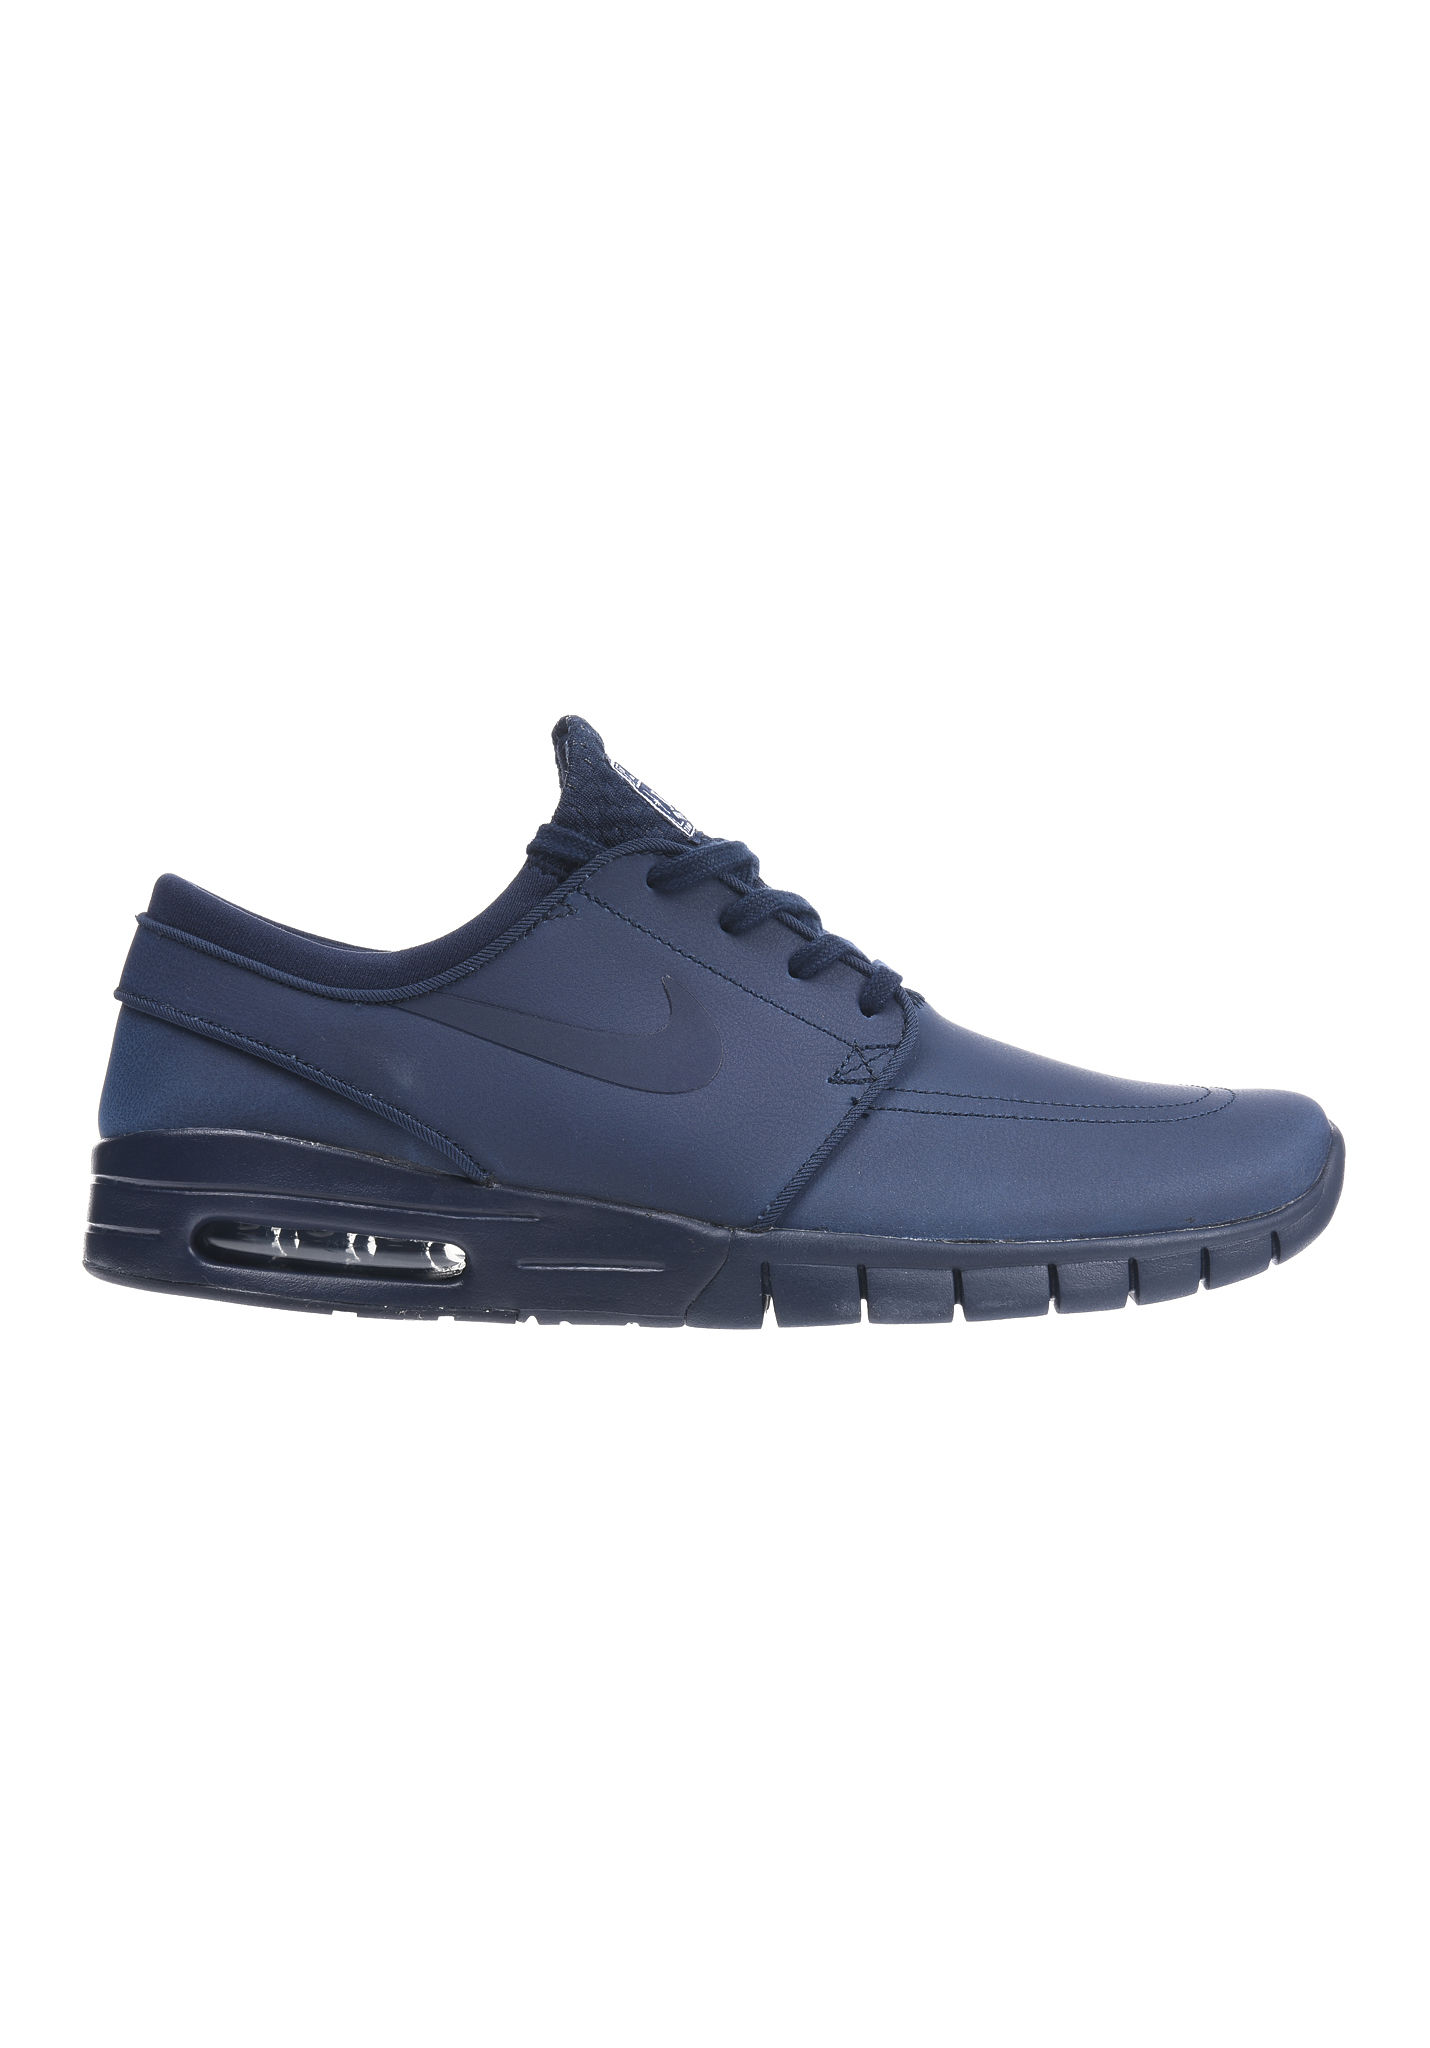 separation shoes 873bf 830ea NIKE SB Stefan Janoski Max L - Sneakers for Men - Blue - Pla